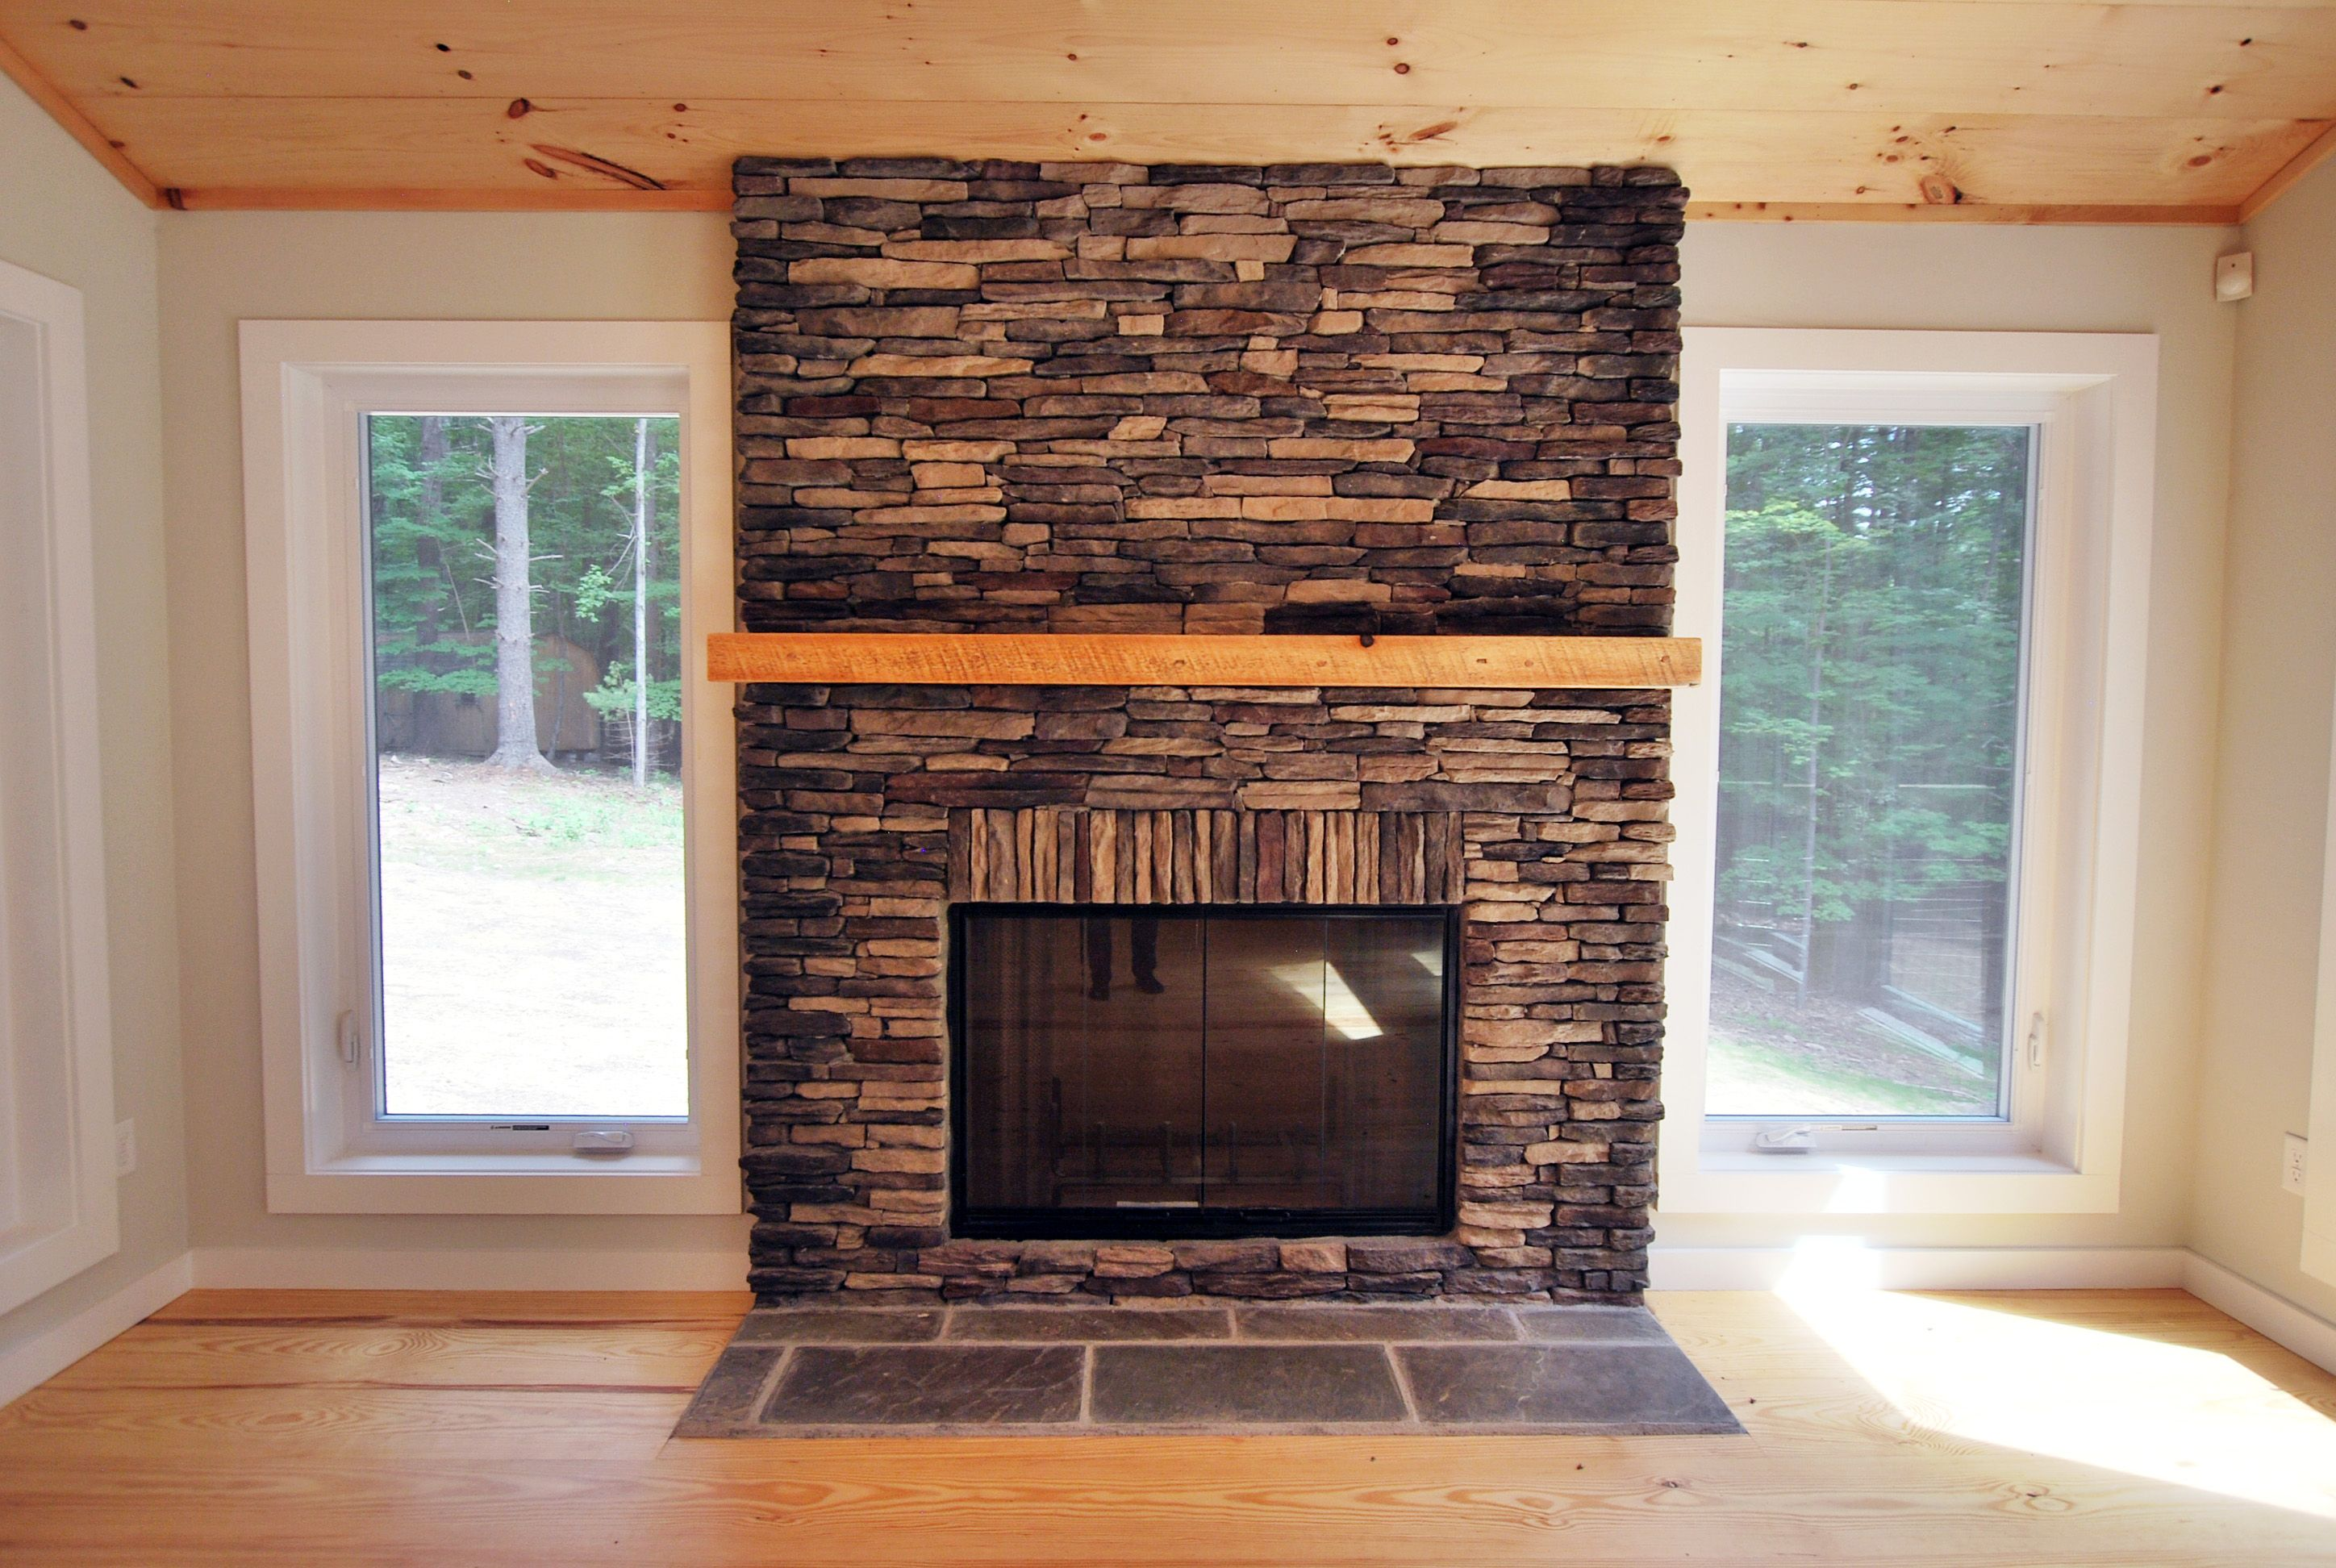 tennessee laurel cavern ledge stone with a smooth beam mantel